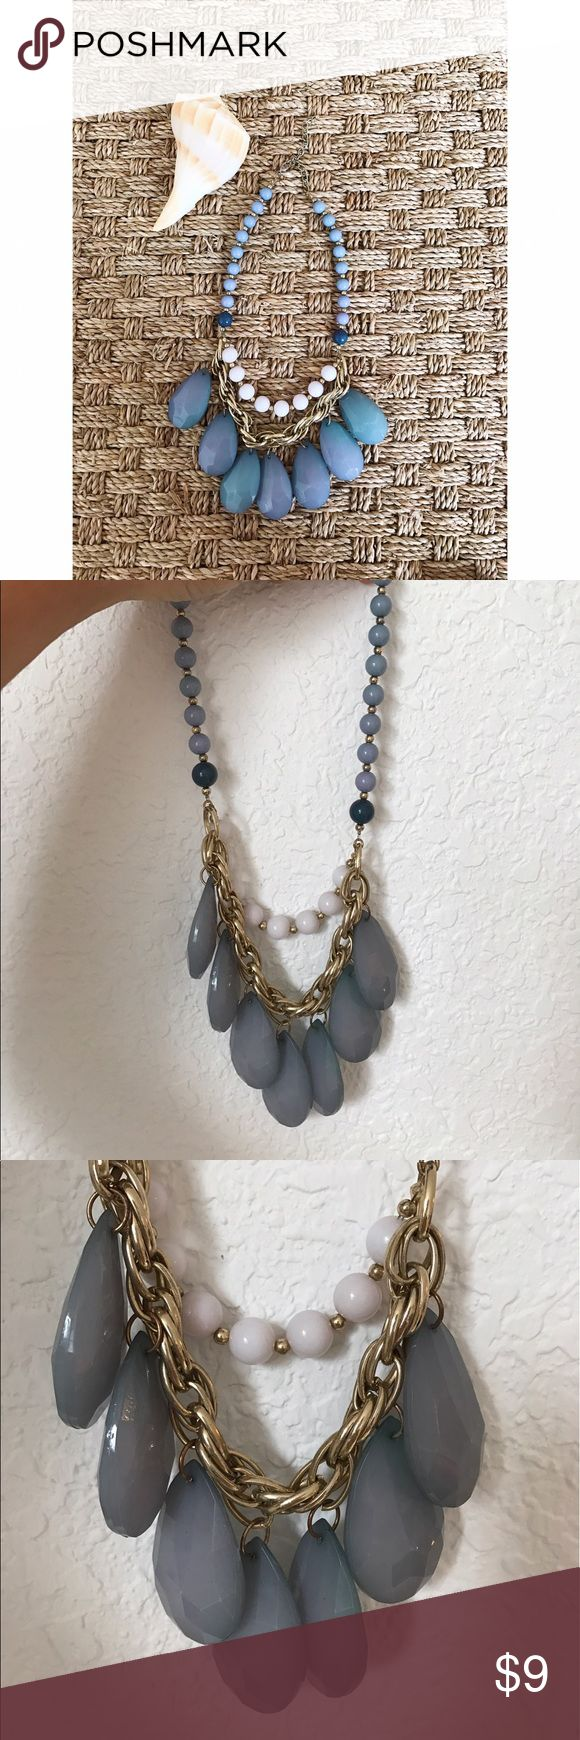 Large blue statement necklace 🌀 Large blue statement necklace. Great for summer! For the life of me I can't remember where I bought it, but I'm pretty sure it was either Lia Sophia or J.Crew. I've lowered the price because of my uncertainty. It has some wear, but in great condition. Please let me know if you have any questions! Lia Sophia Jewelry Necklaces